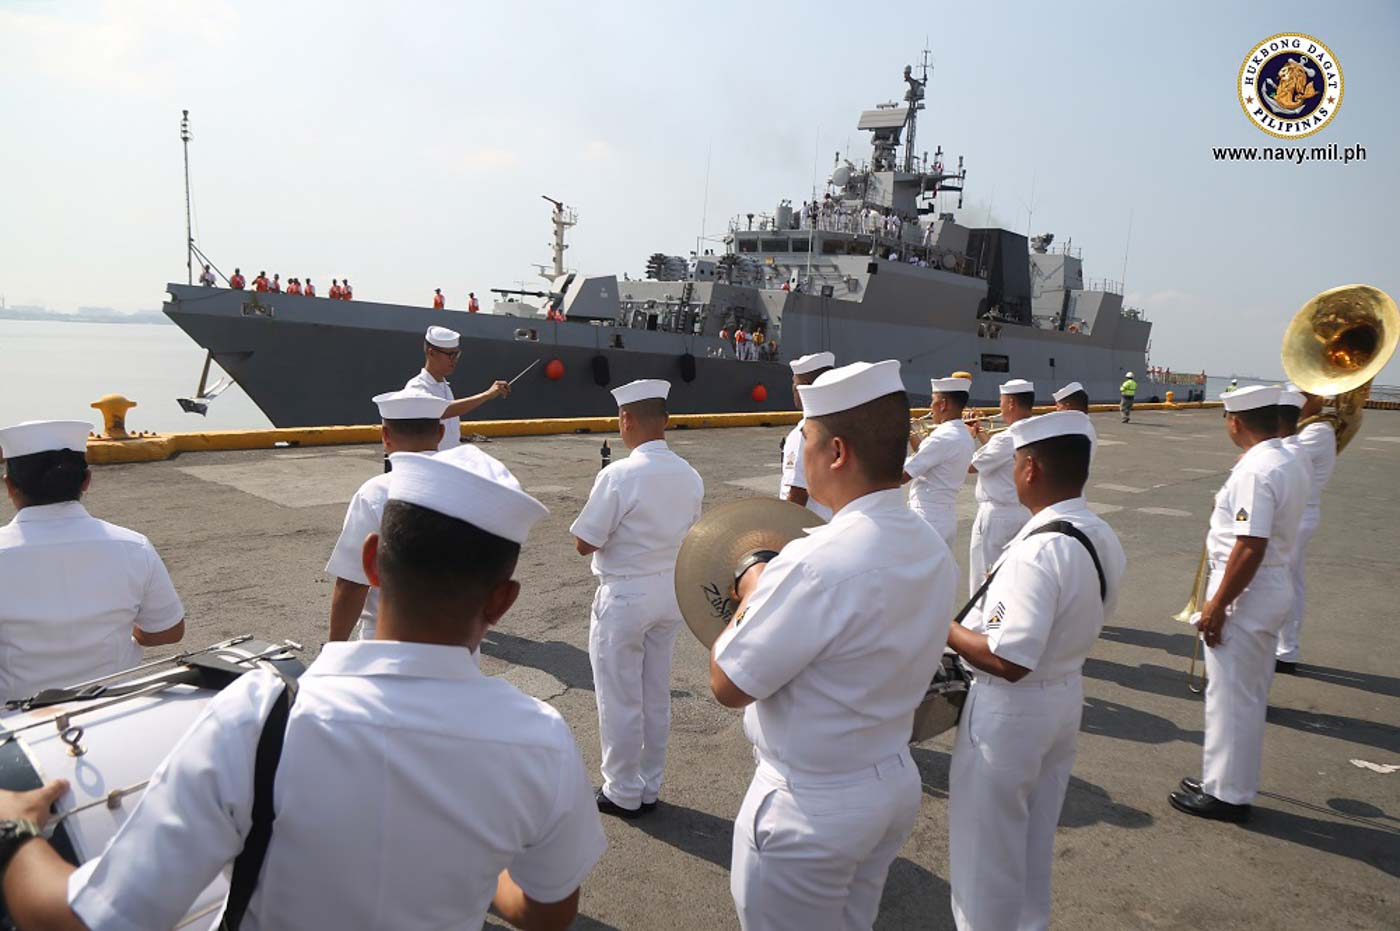 FRIENDLY VISIT. The Philippine Navy welcomes the Indian Navy ships Sahyadri and Kiltan at the Port of Manila on Wednesday, October 23, 2019. Photo from the Philippine Navy